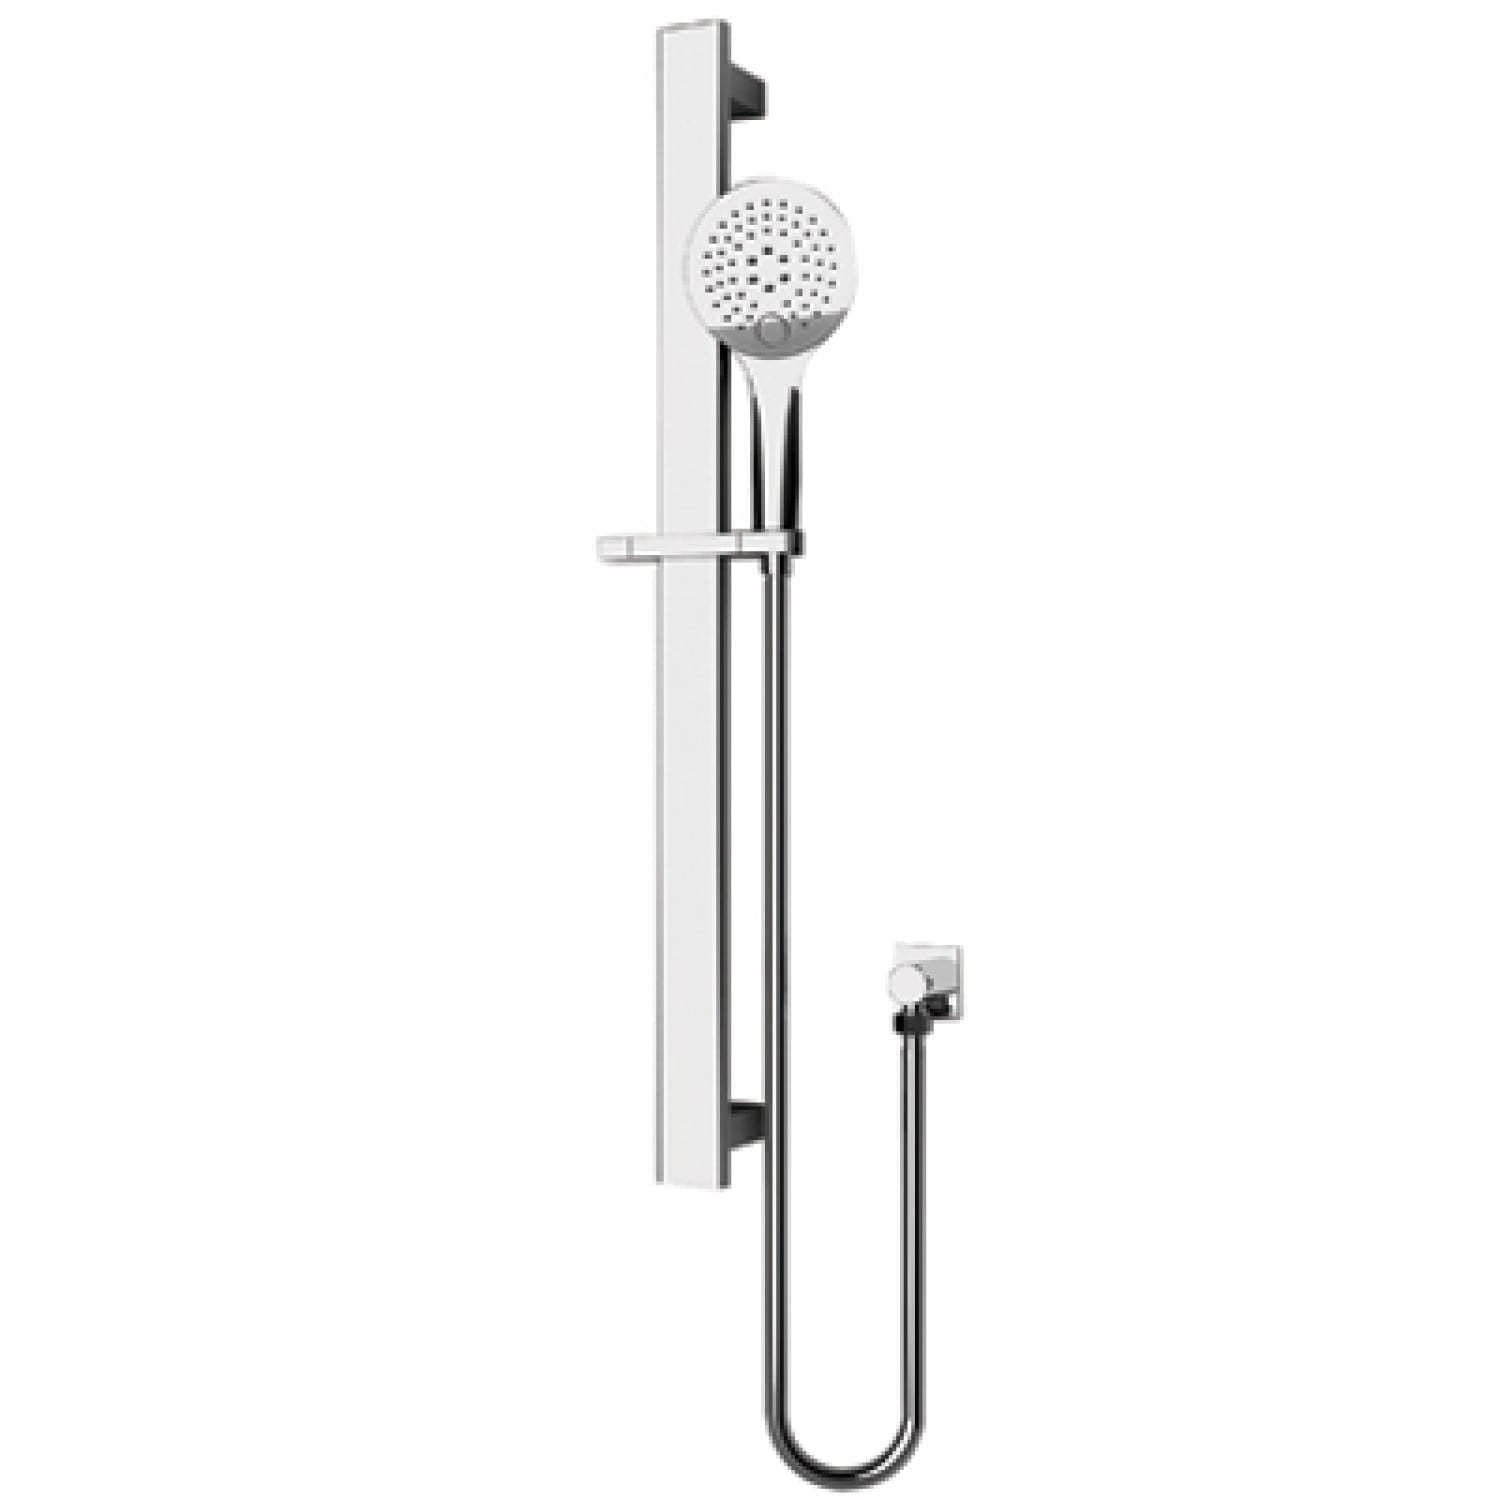 shower rail - shower head